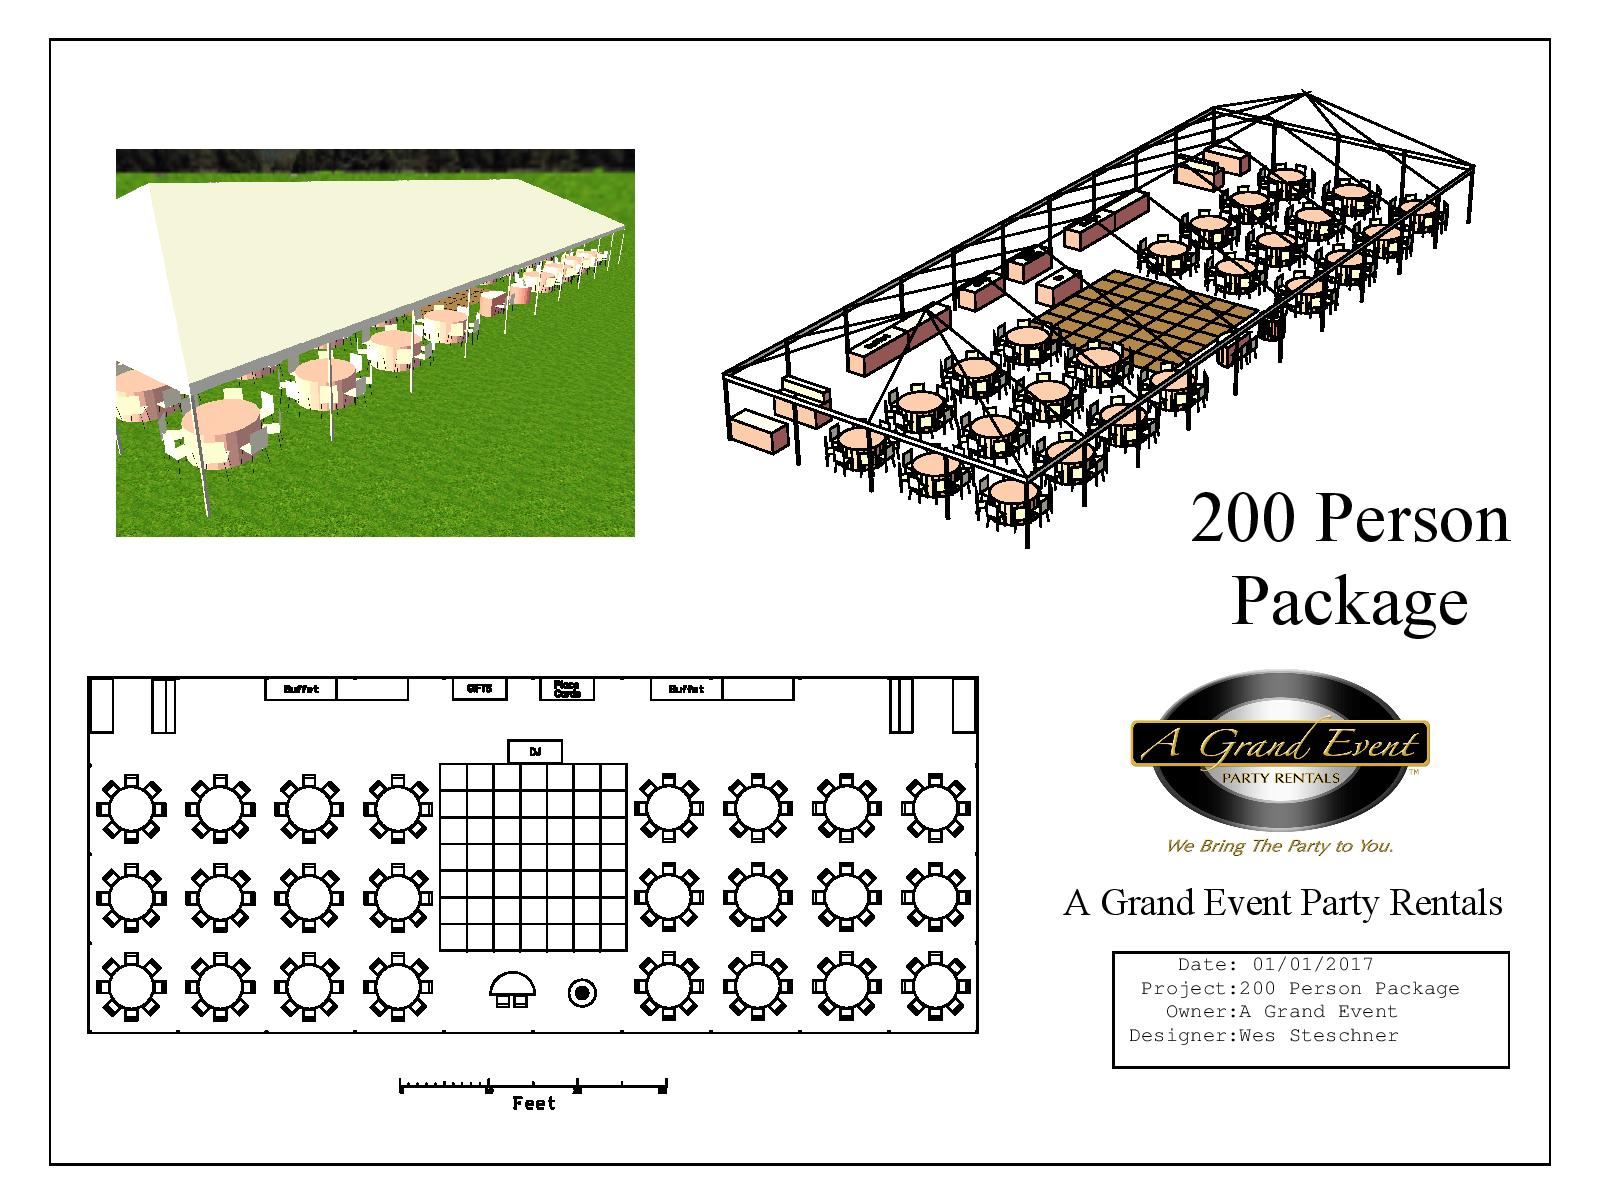 200 Person Tent Package  sc 1 st  A Grand Event & 200 Person Tent Package | A Grand Event